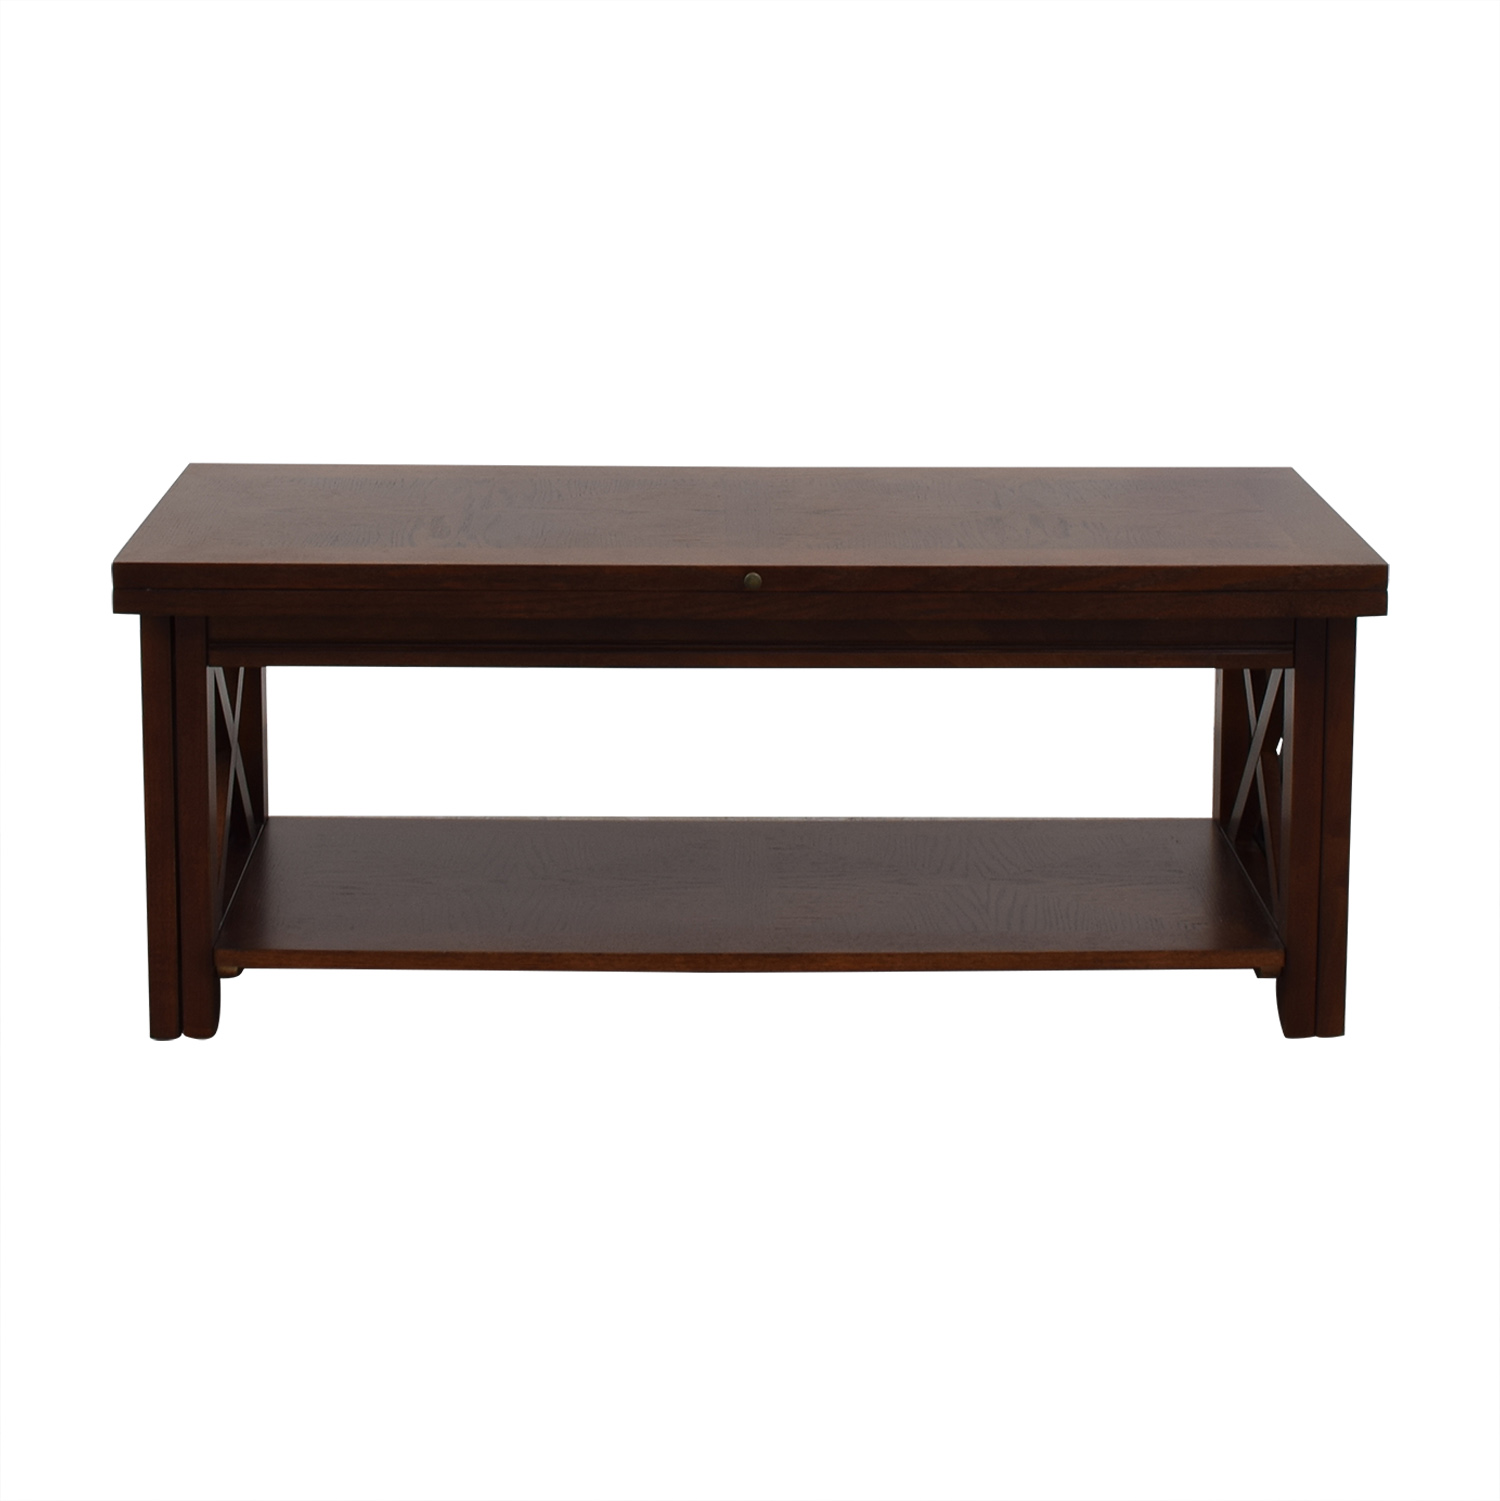 Raymour & Flanigan Raymour & Flanigan Tucson Extendable Coffee Table